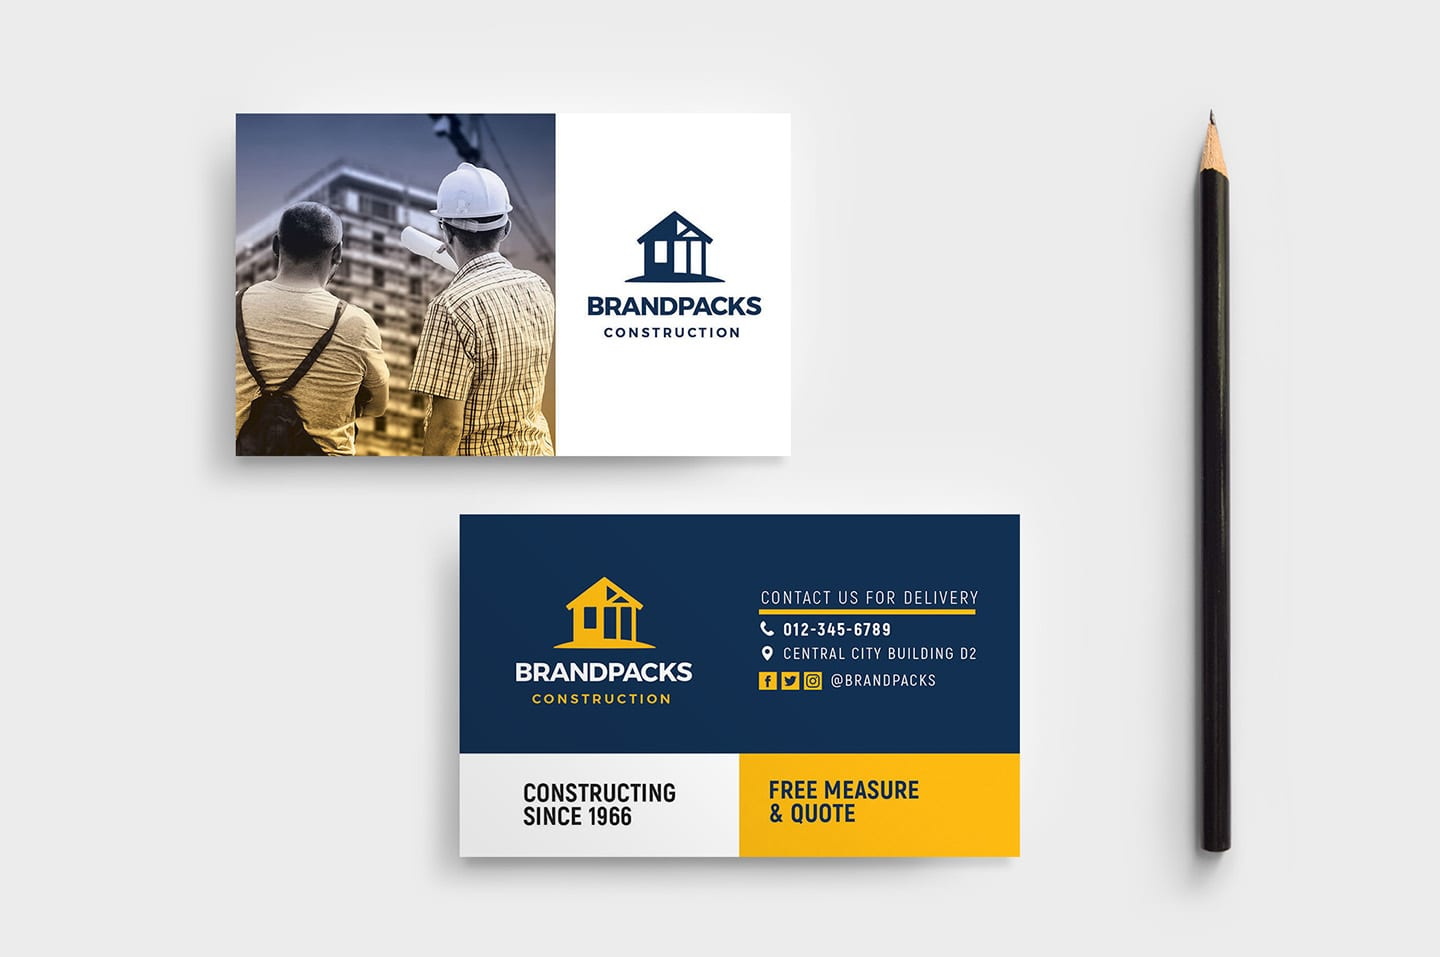 005 Unforgettable Construction Busines Card Template High Definition  Templates Visiting Company Format Design PsdFull